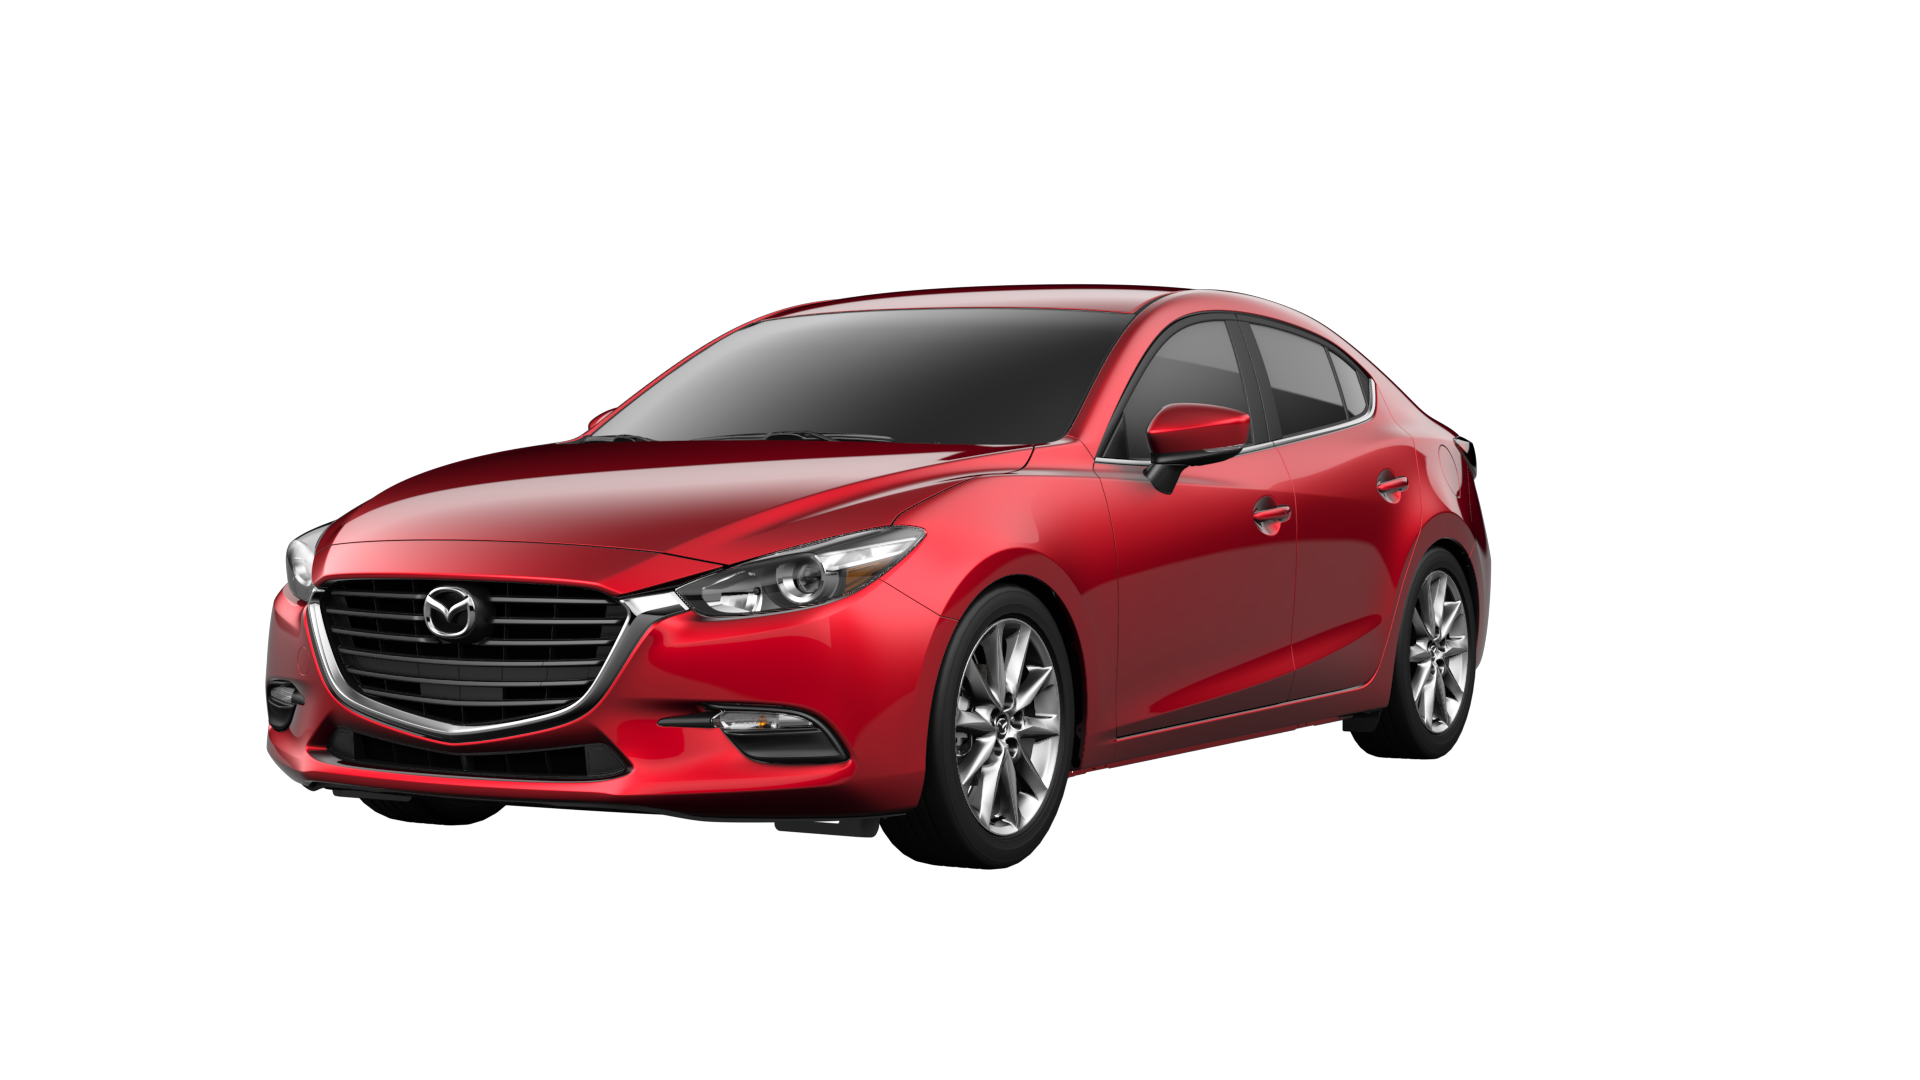 Mazda New Car Specials In Louisville Ky Neil Huffman Mazda Price